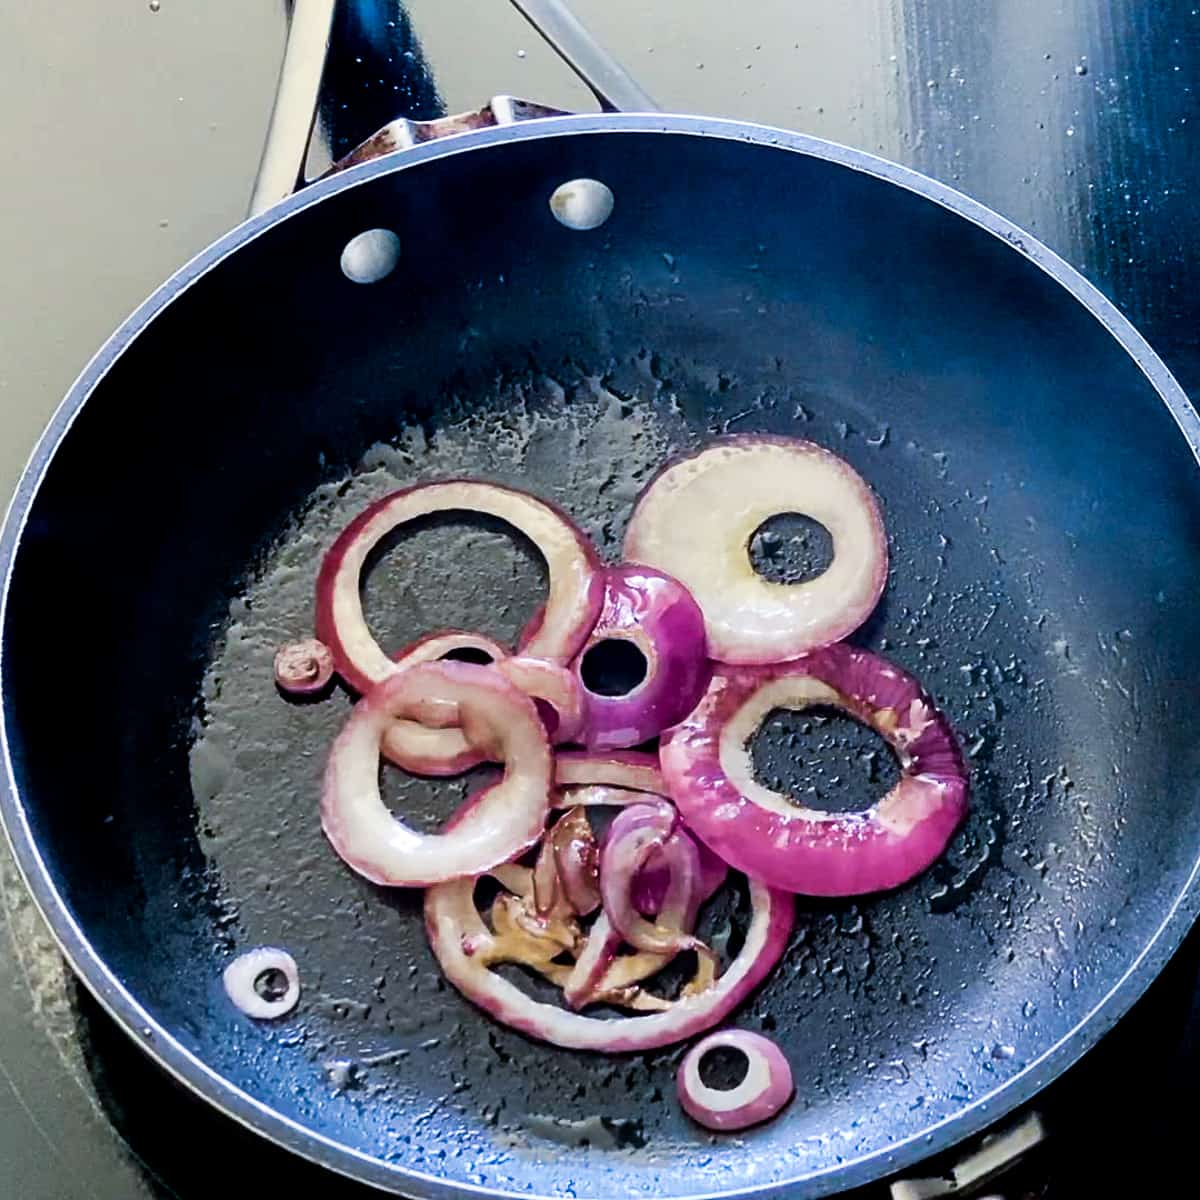 Onions cooking in black skillet.